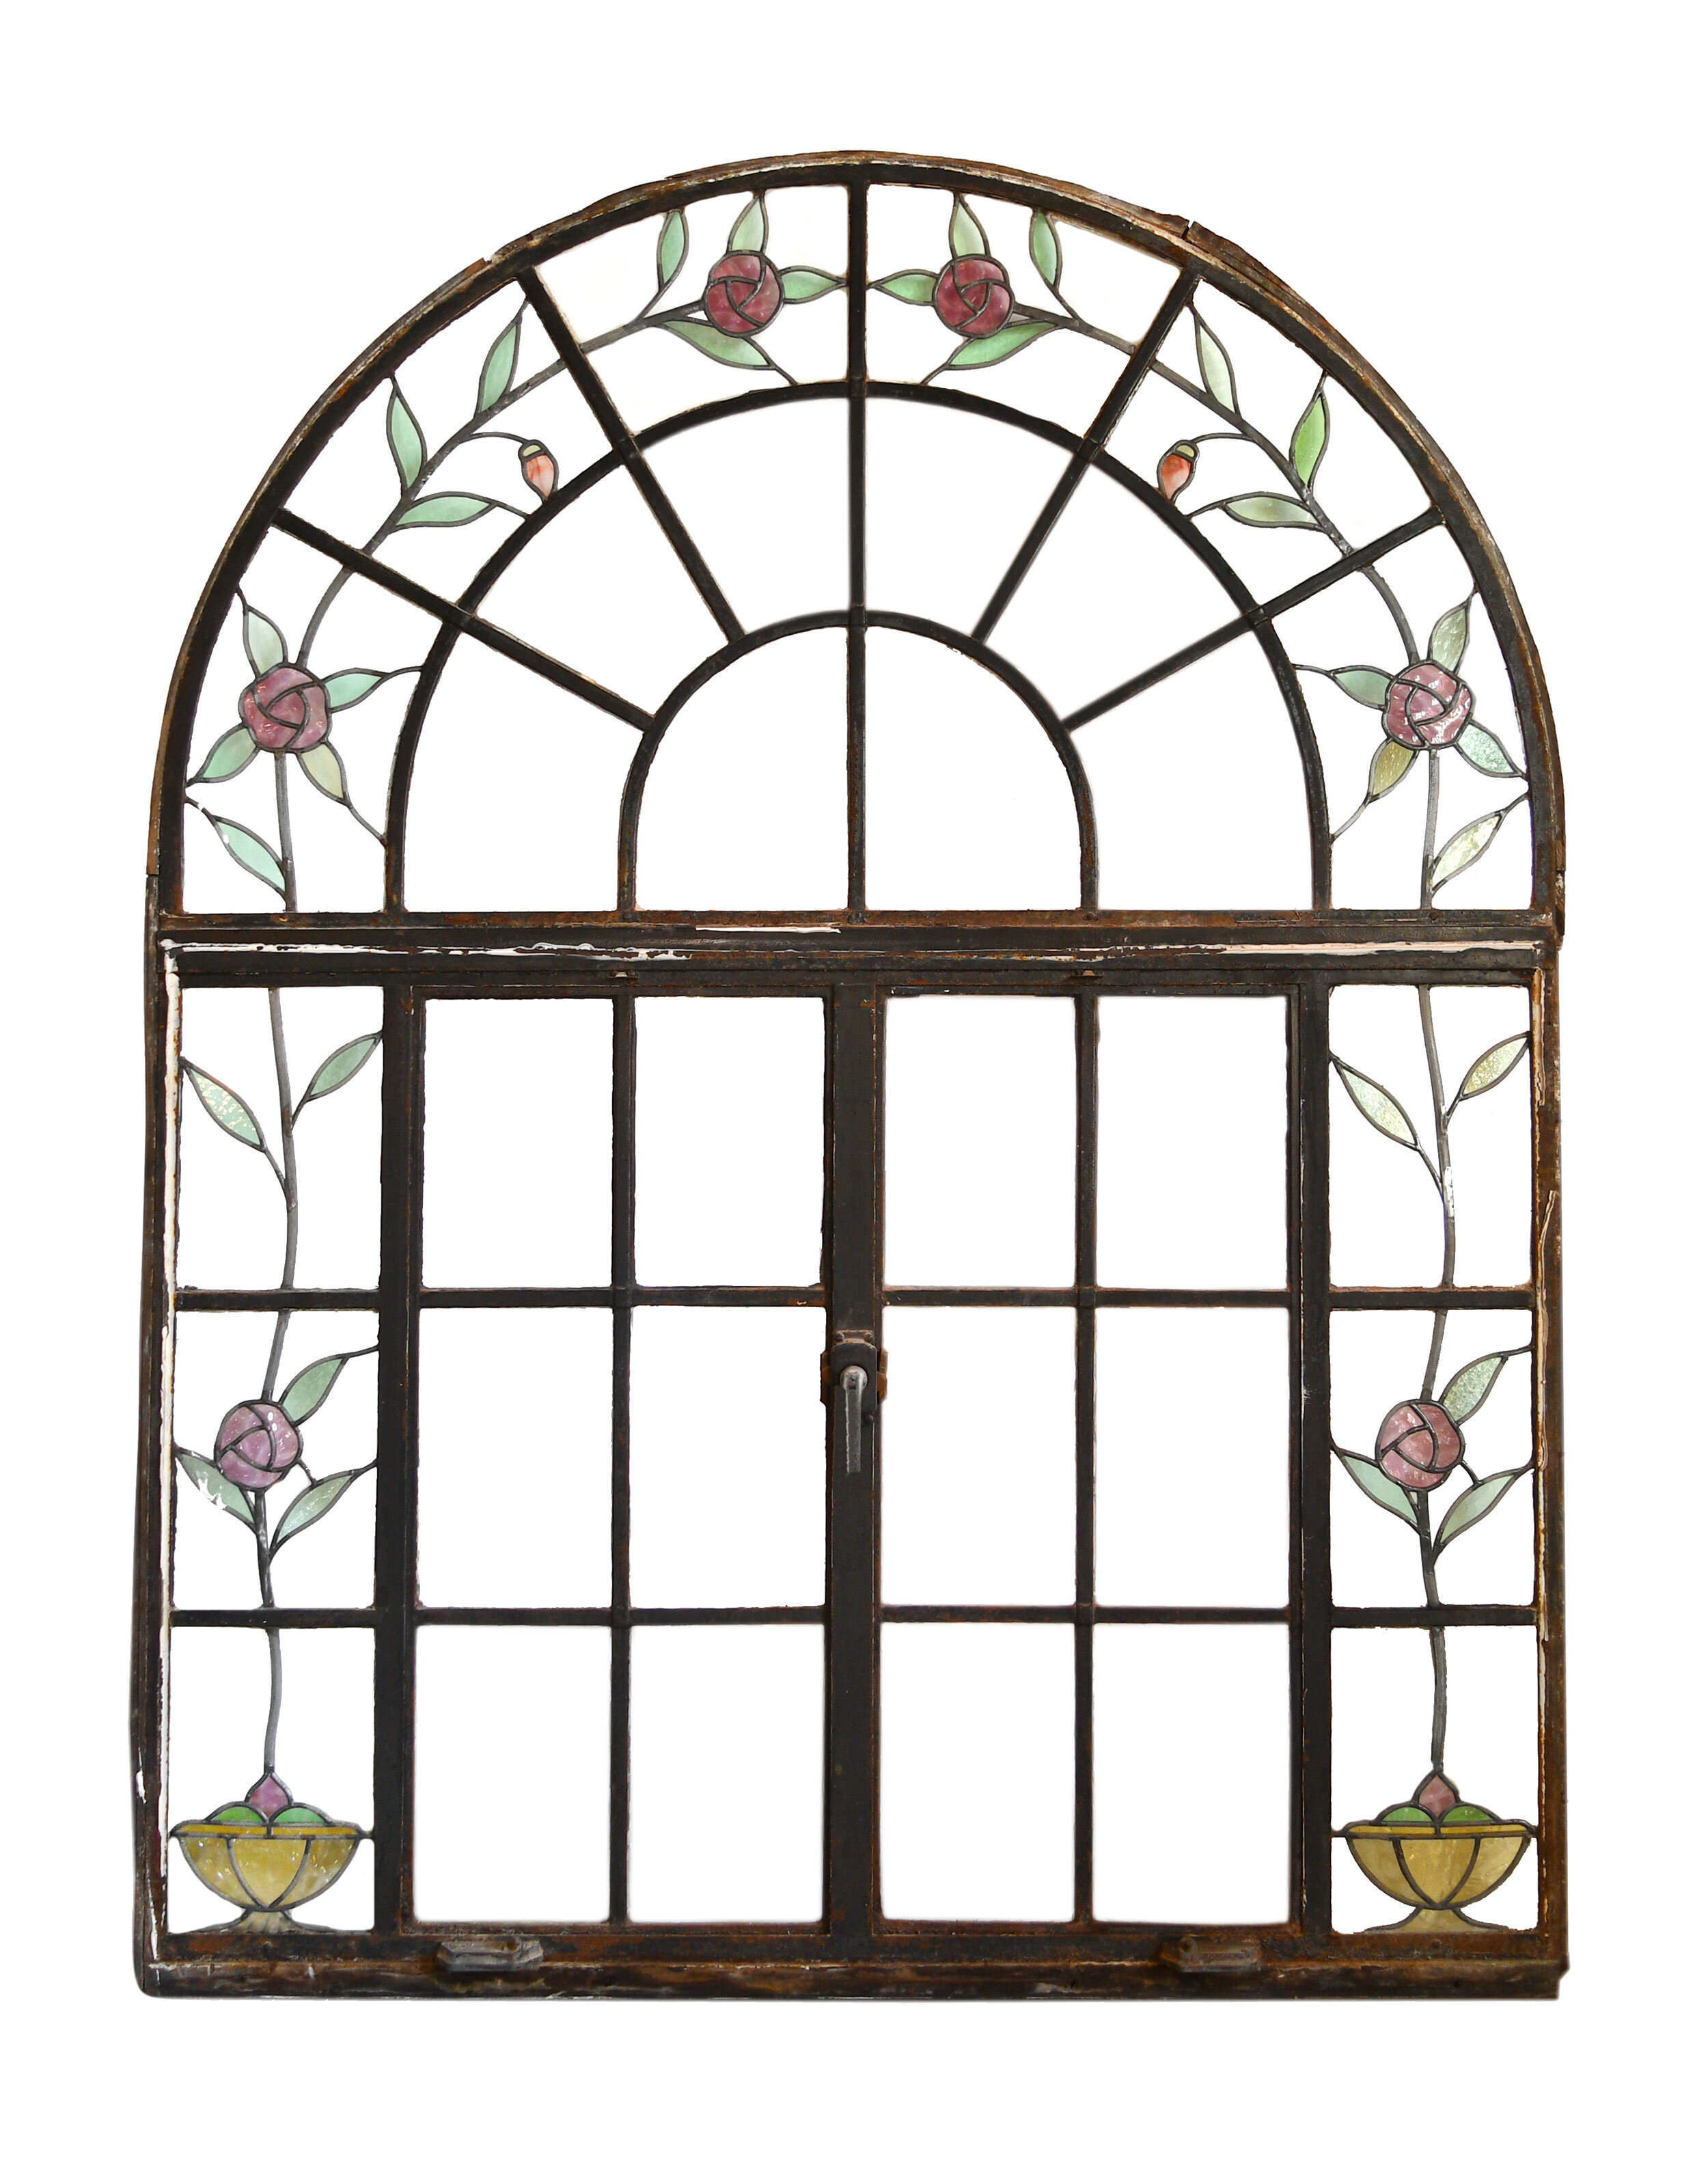 Arched casement window with stained glass roses  - 1 available